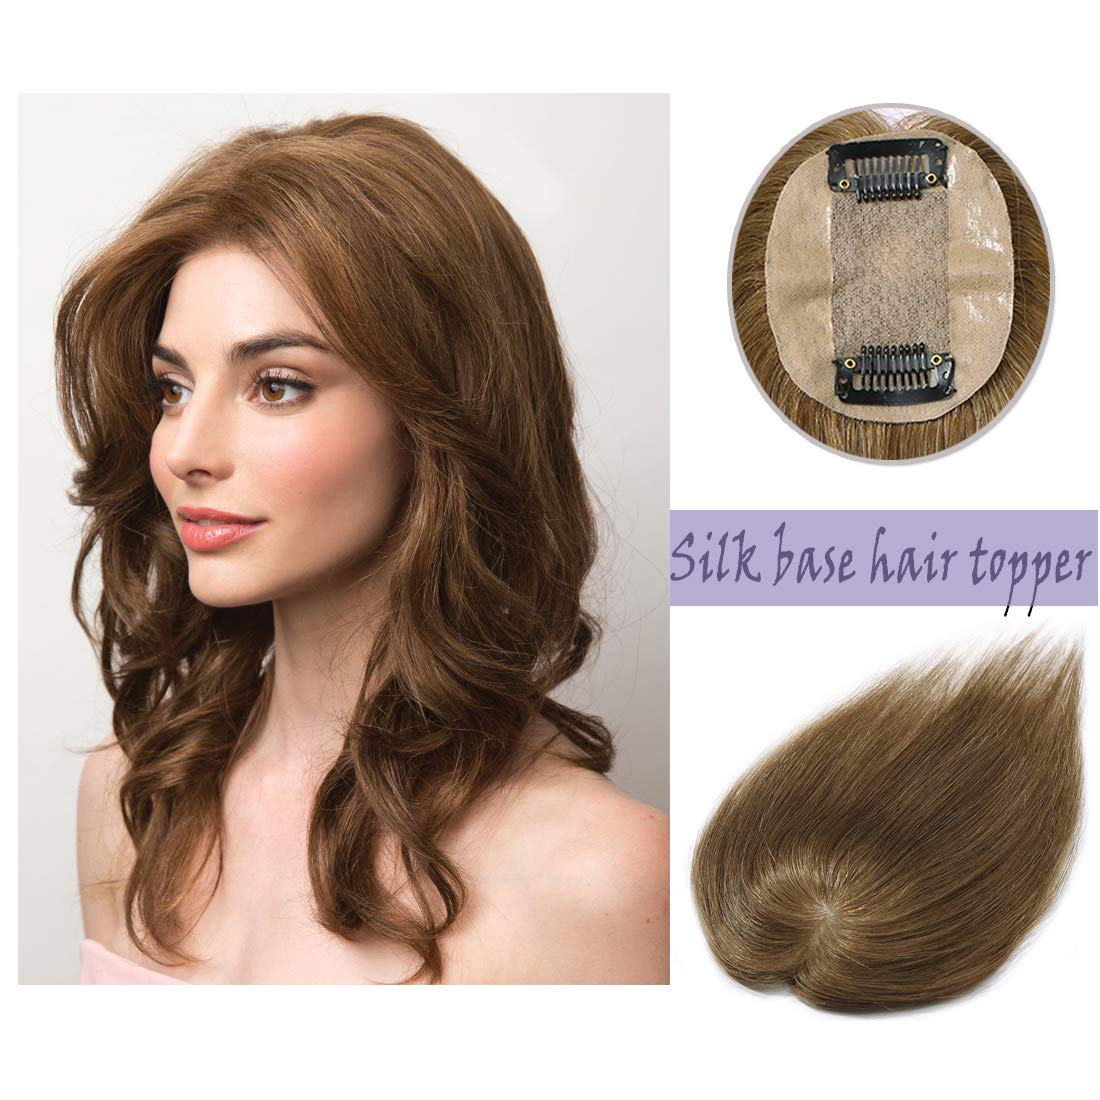 Silk Base Real Human Hair Topper for Women Top Hairpiece Clips in Crown Hand Made Toupee Replacement Extentions for Hair Loss Thinning Hair Cover Gray Hair #06 Light Brown 18''